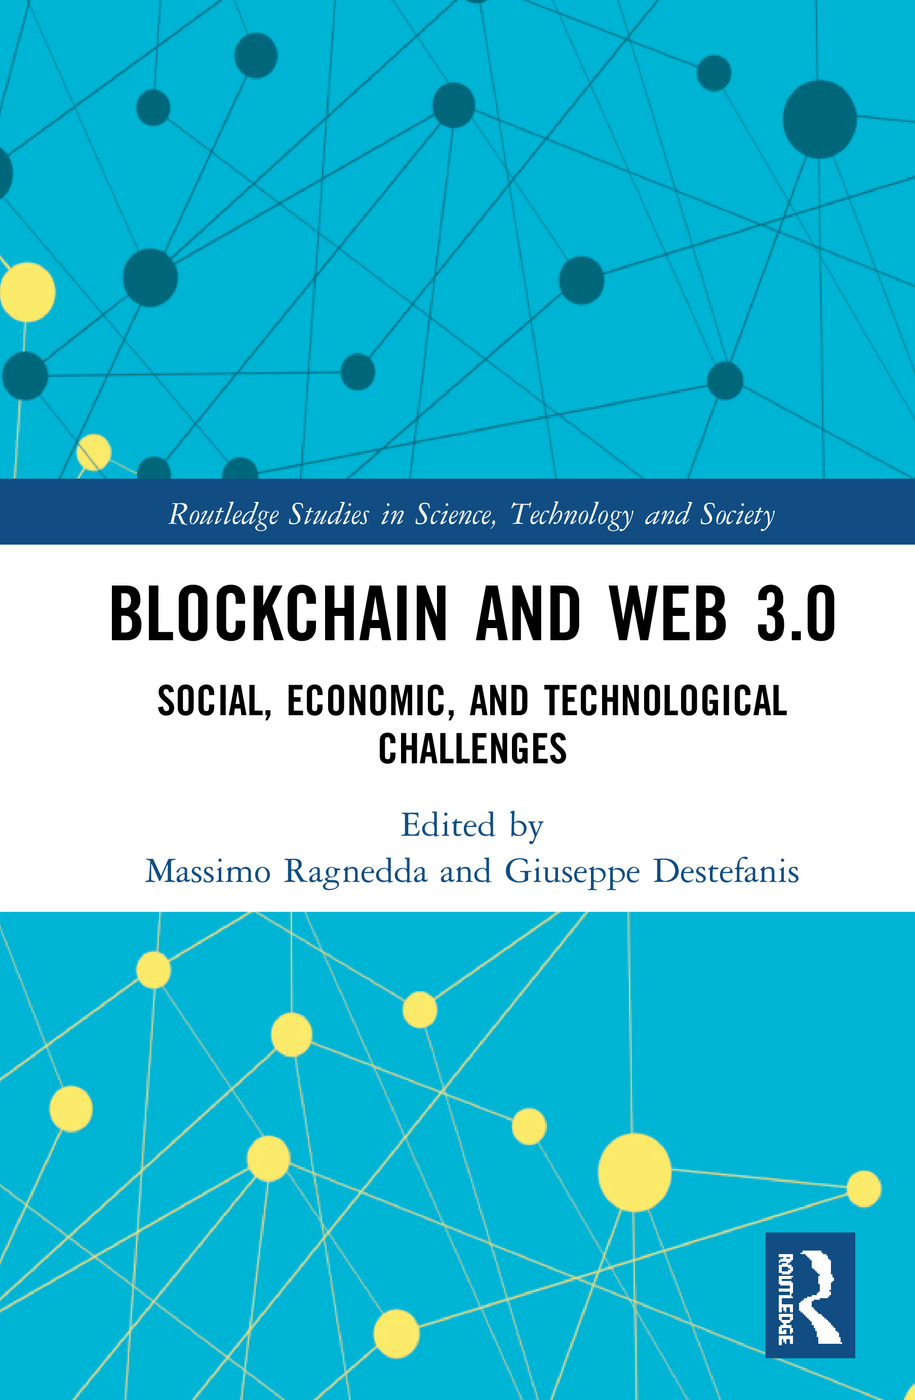 Blockchain and Web 3.0: Social, Economic, and Technological Challenges book cover